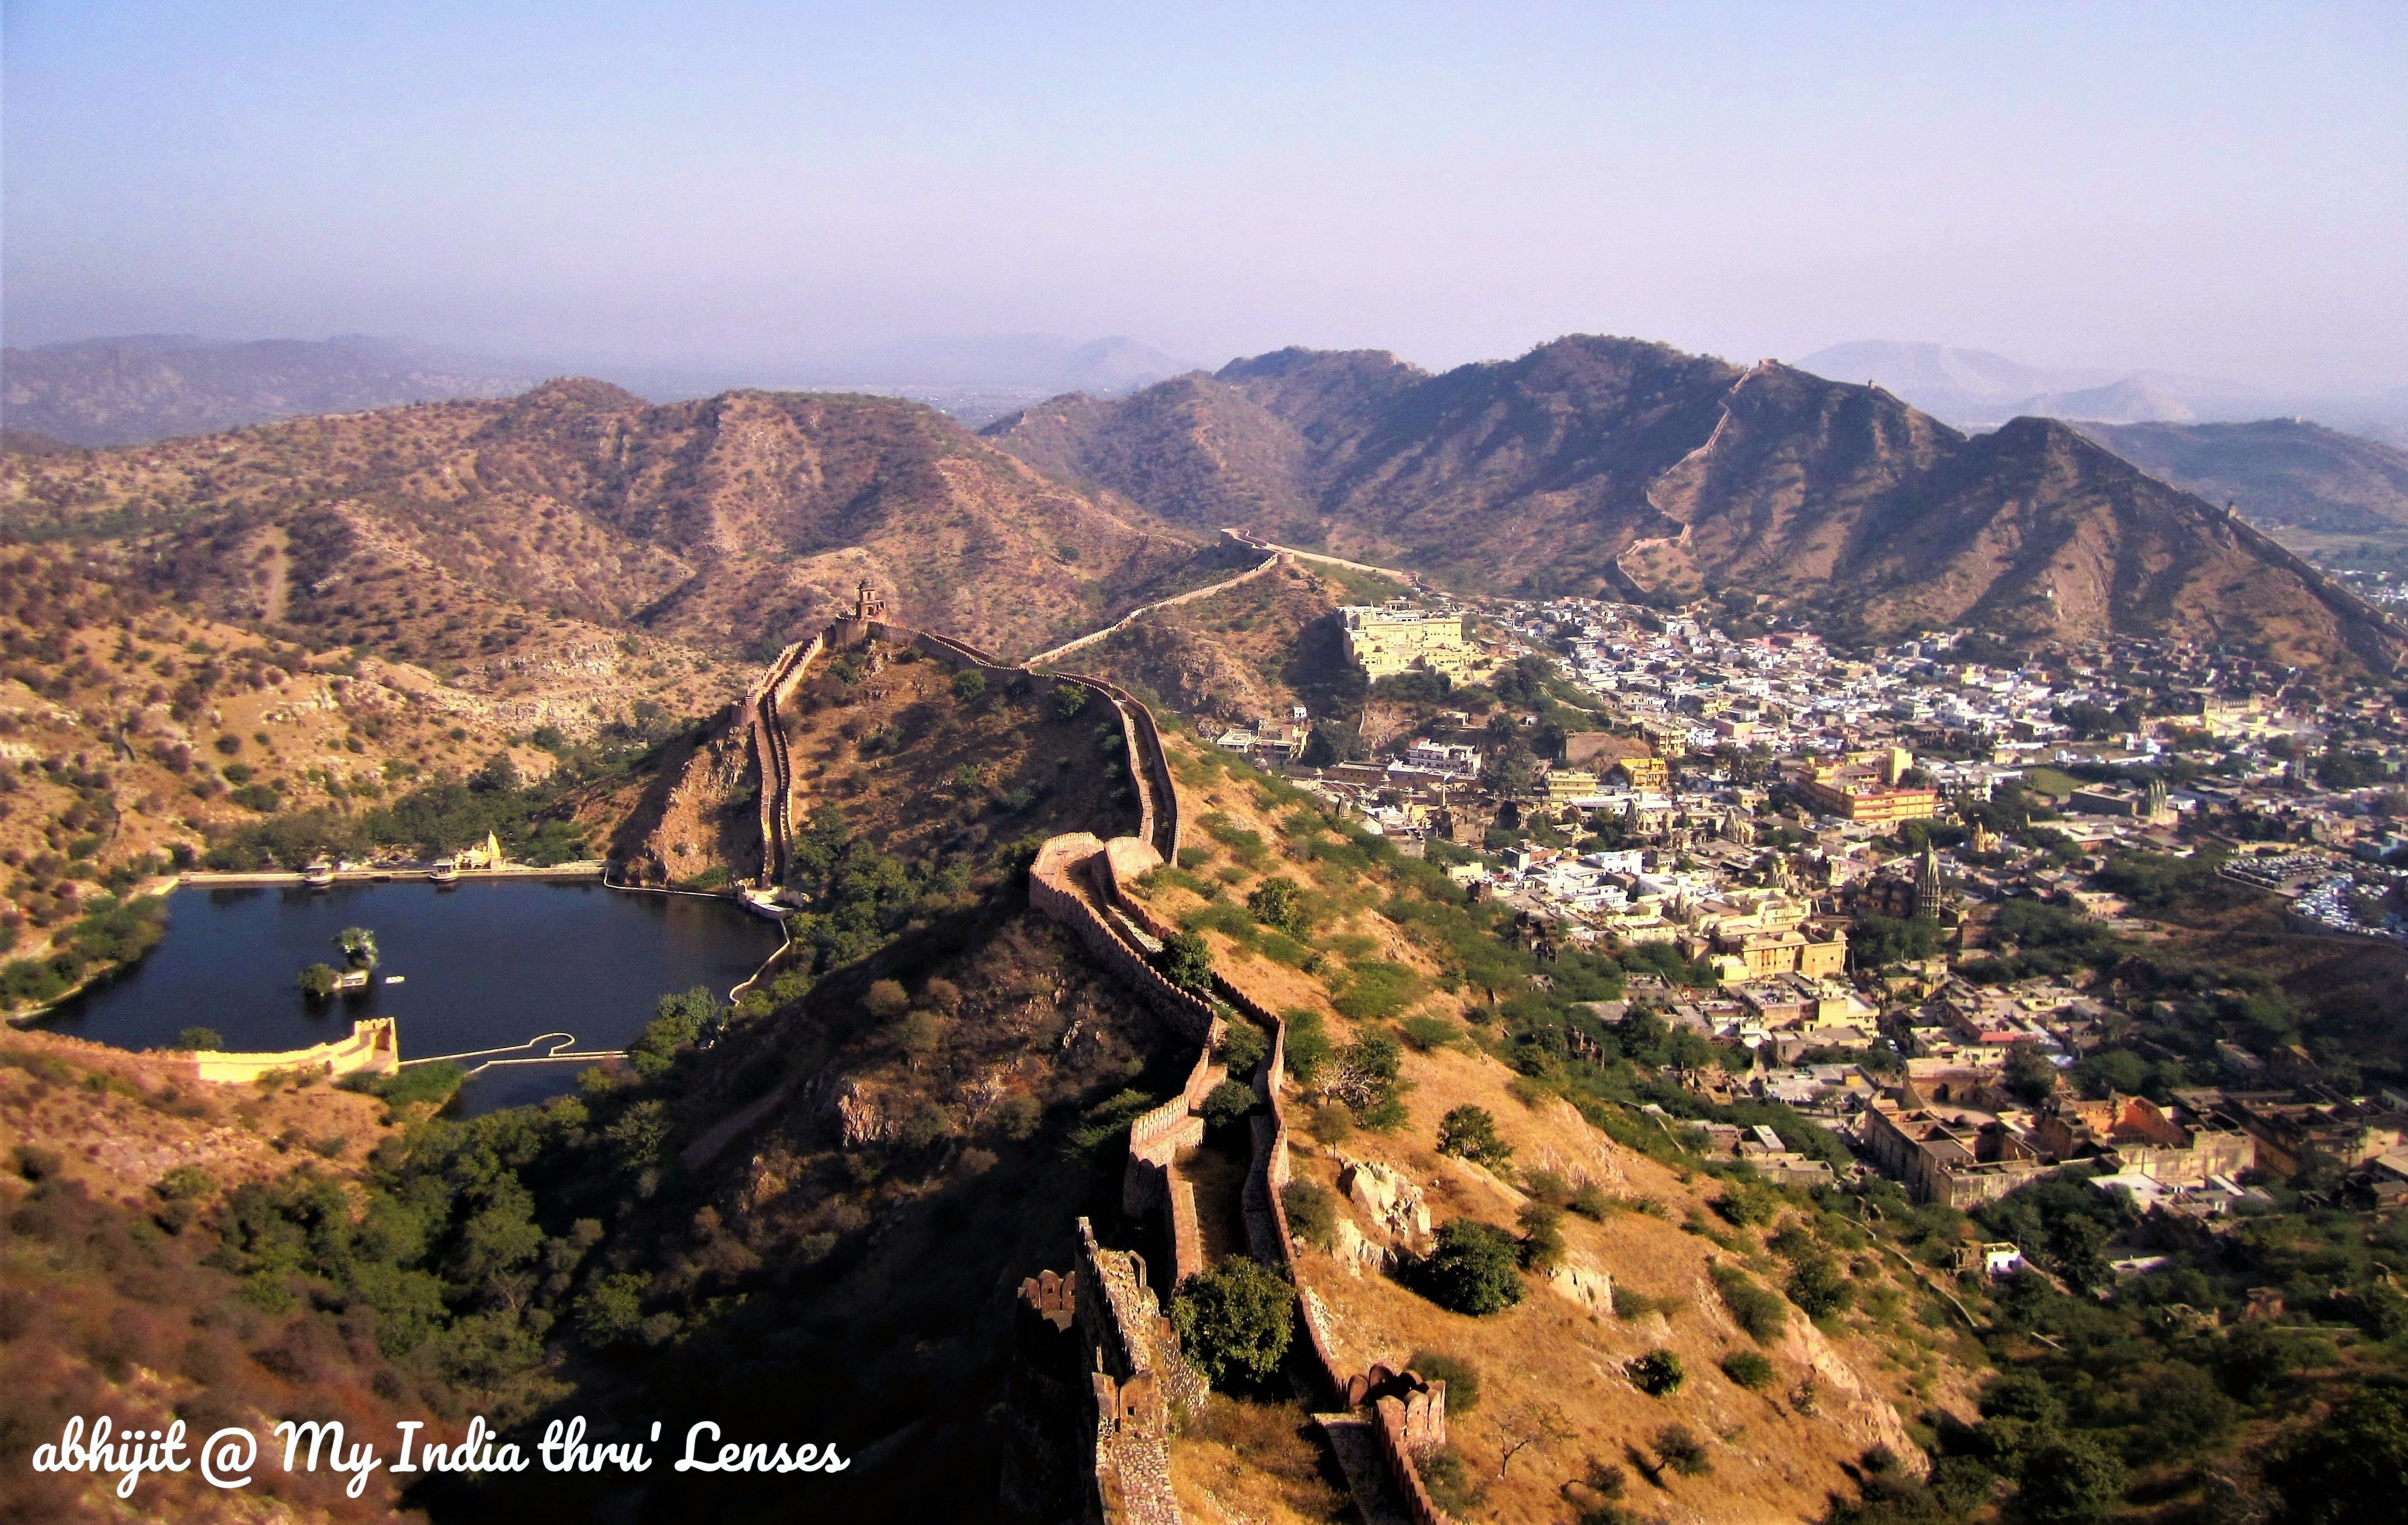 View of Aravalli hills and the fortifications from the top of Jaigarh Fort